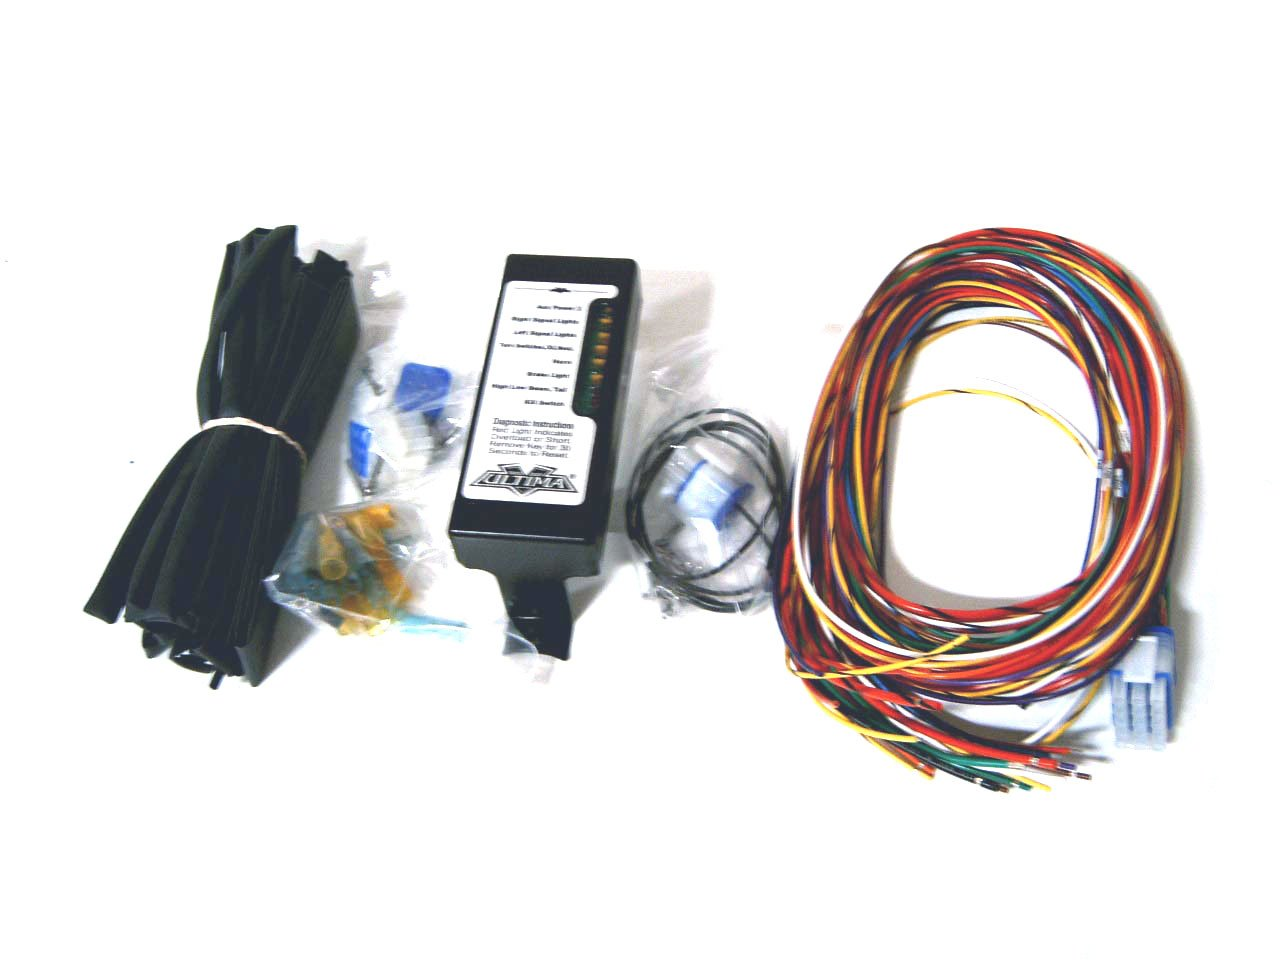 61DV2Bq5%2BHL._SL1280_ amazon com ultima complete wiring harness kit for harley davidson  at gsmx.co